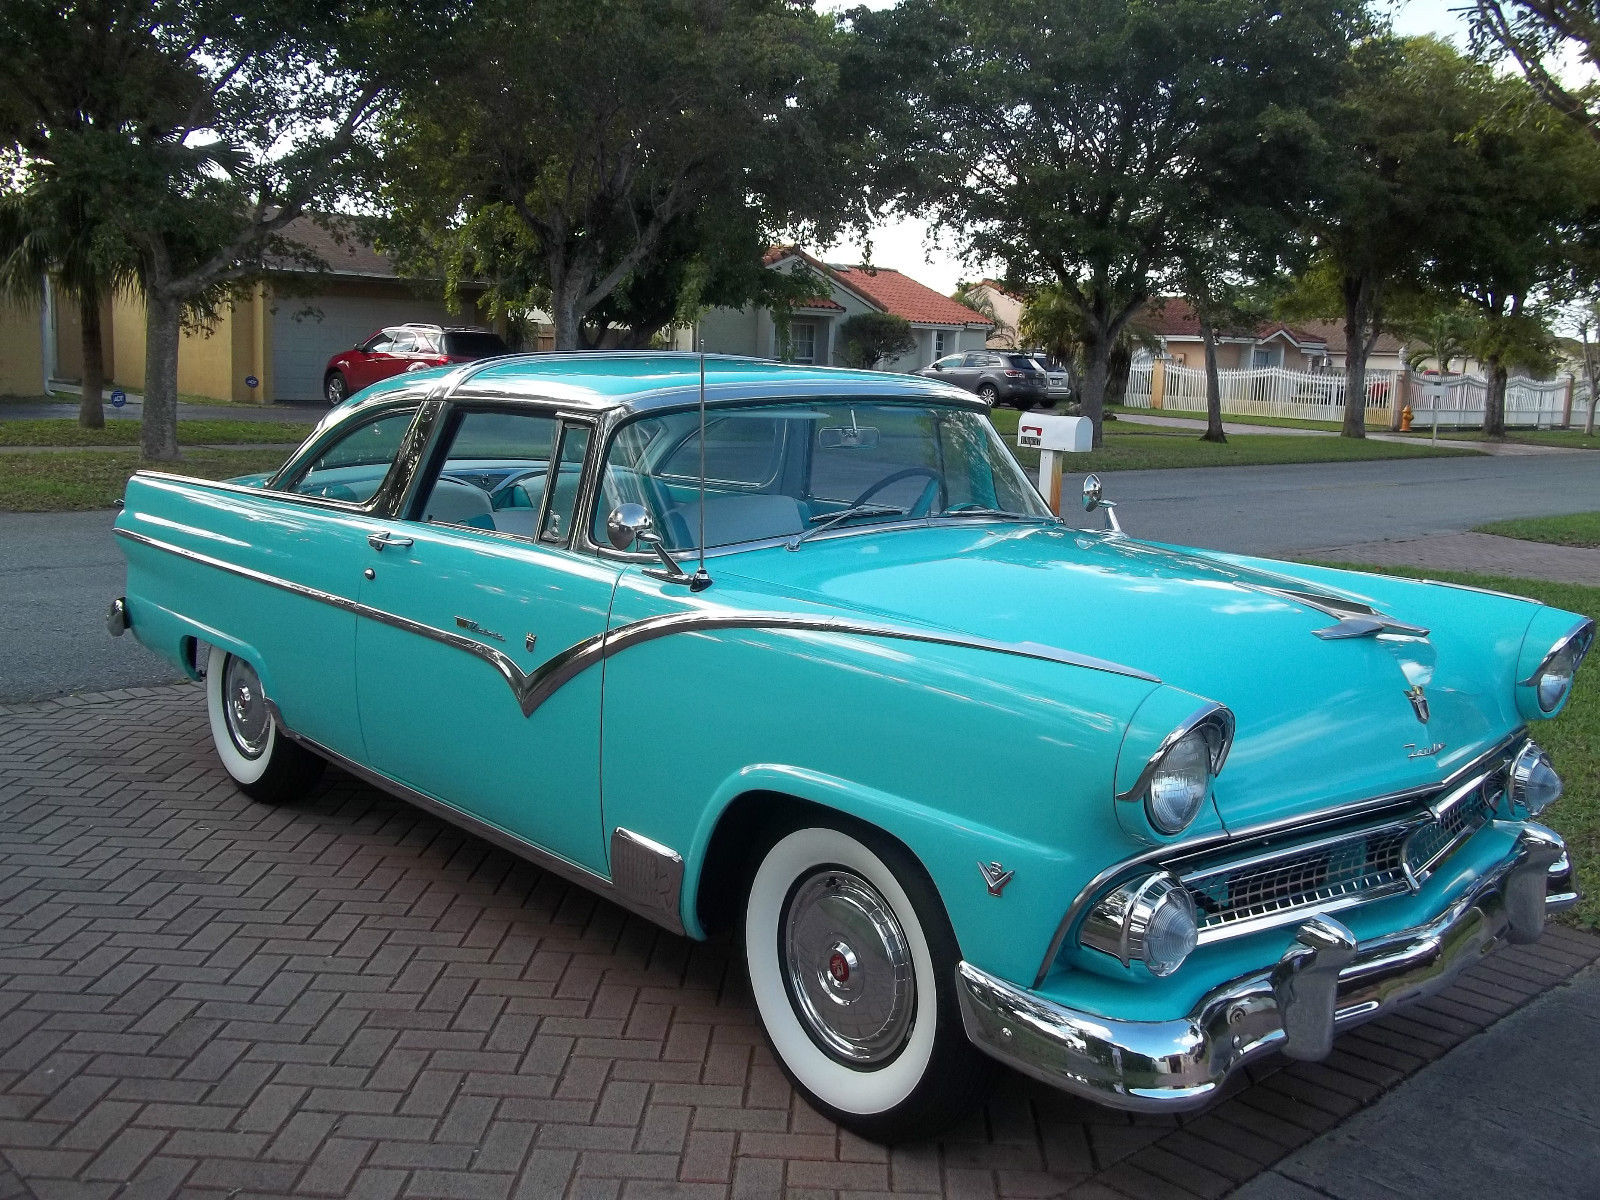 1955 ford crown victoria restored not chevy for sale in hialeah florida united states. Black Bedroom Furniture Sets. Home Design Ideas